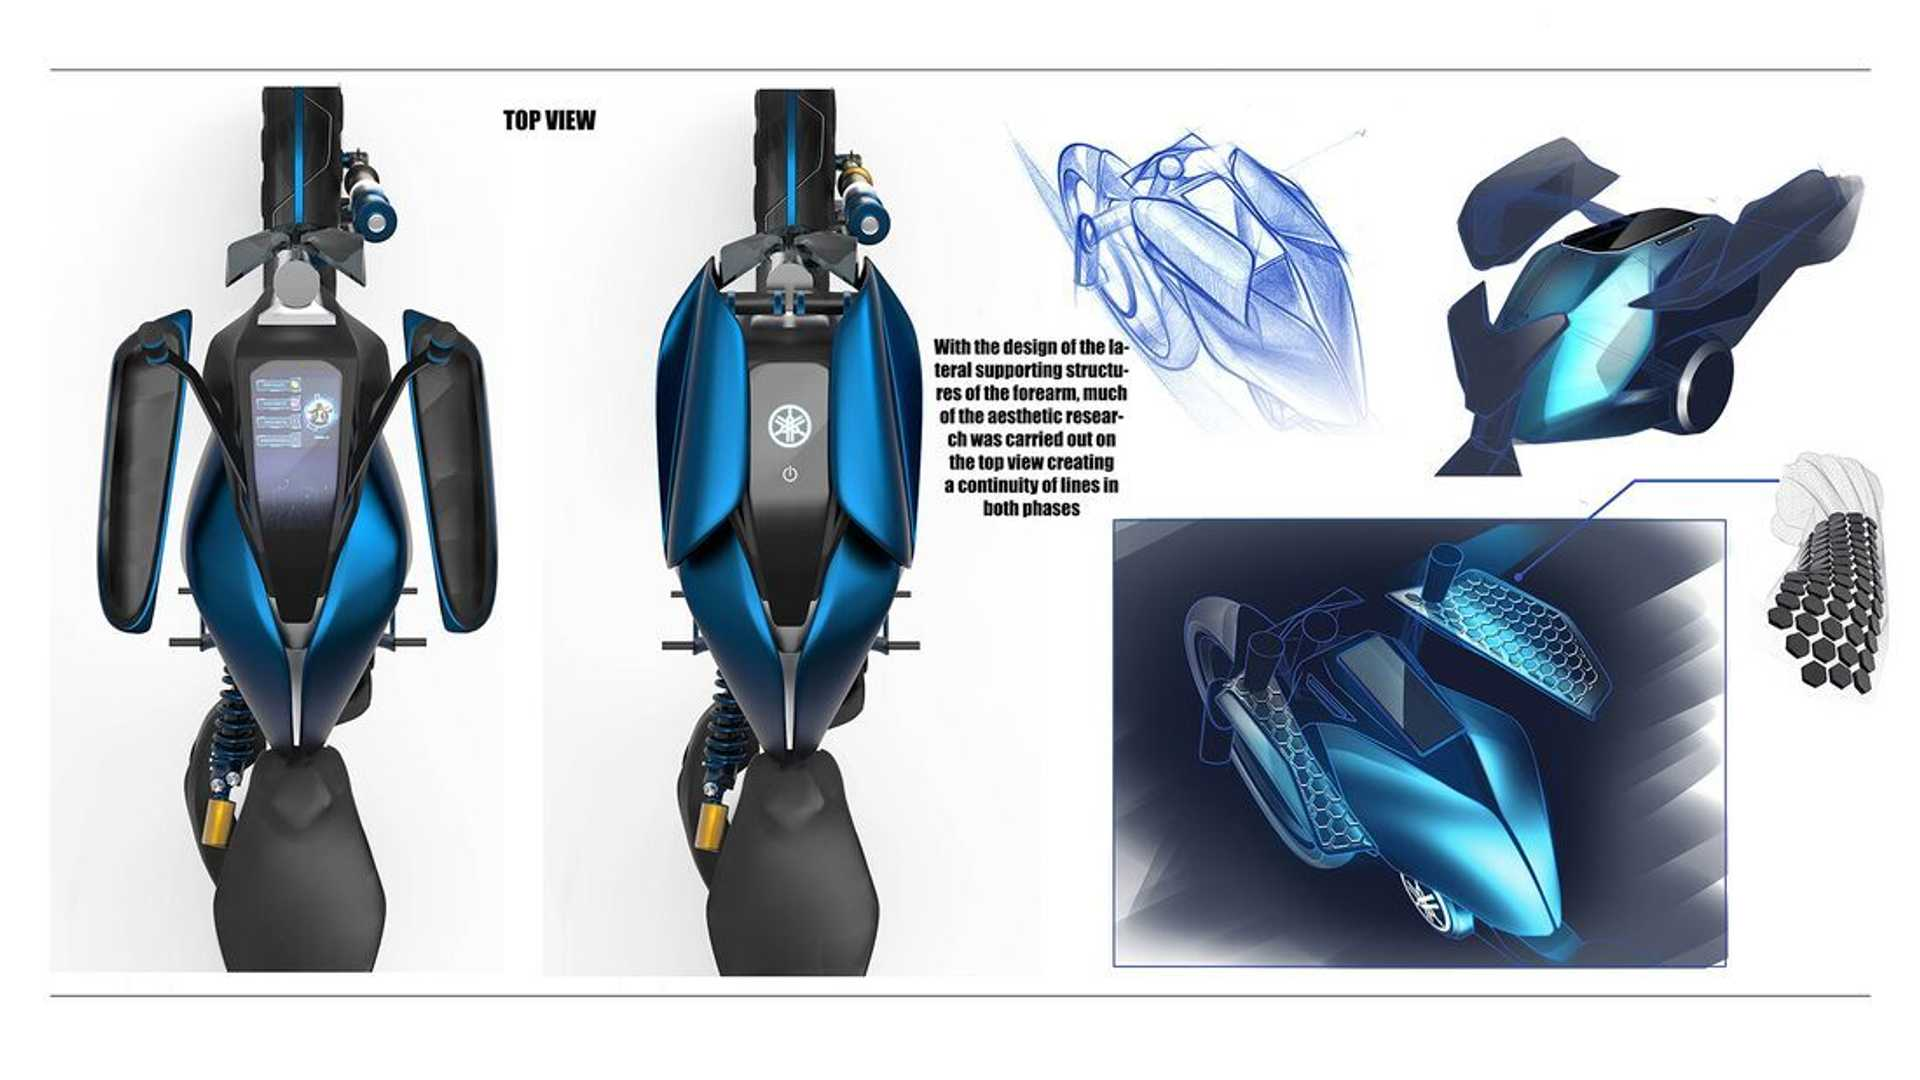 Yamaha Double Y Concept - Top View